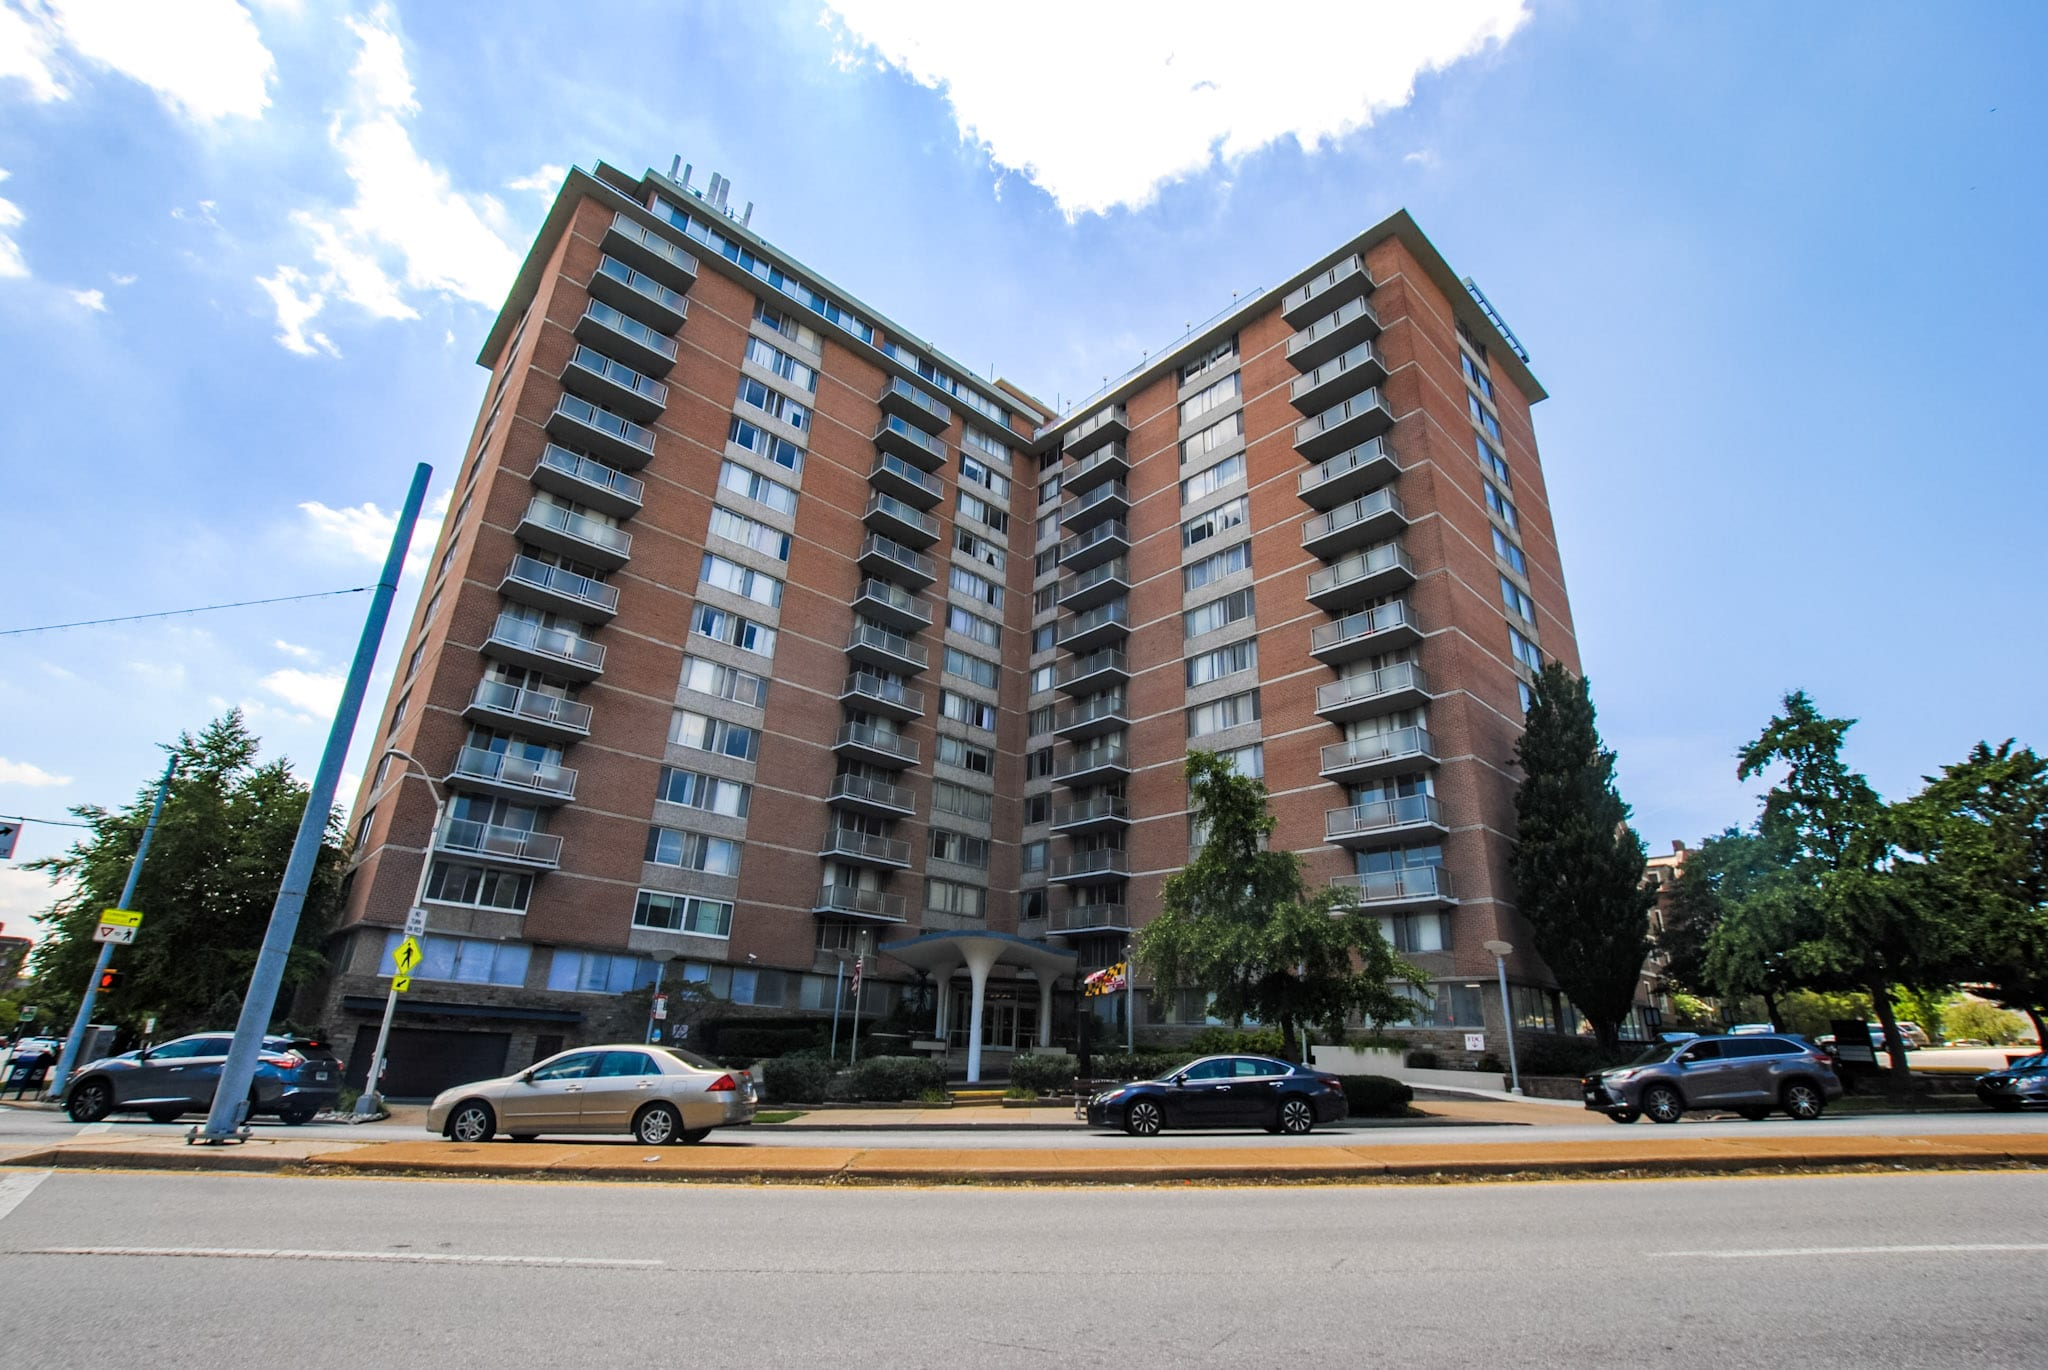 University One Condominium: Two Bedroom Penthouse Suite Next to Johns Hopkins University